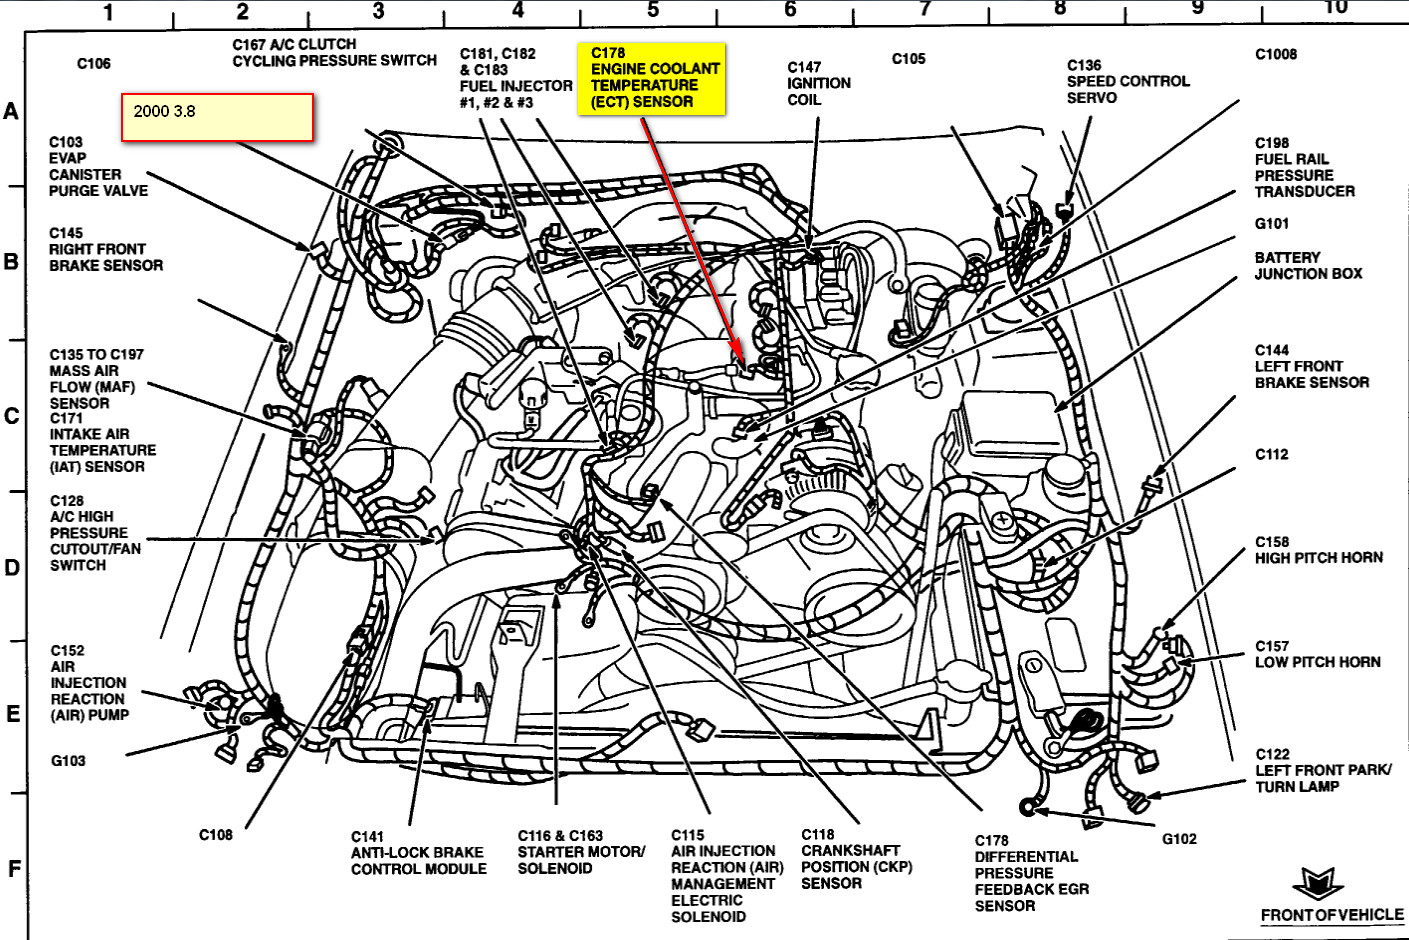 1991 Mazda Miata Engine Diagram Simple Guide About Wiring 2005 Chrysler Town And Country Blower Motor 3800 Temperature Sensor Location Free